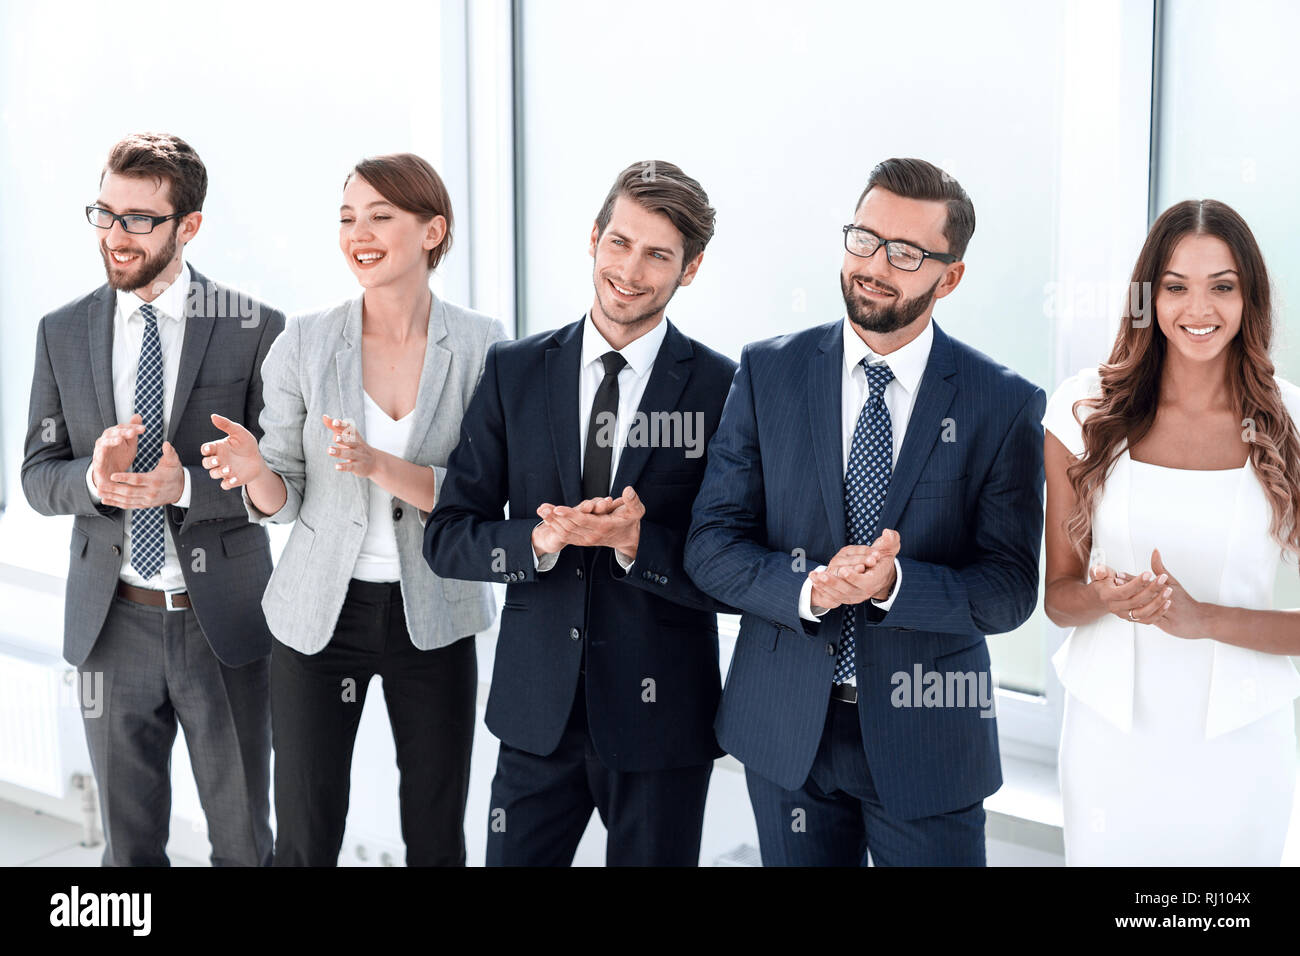 group of young business people applauding standing in the office. - Stock Image